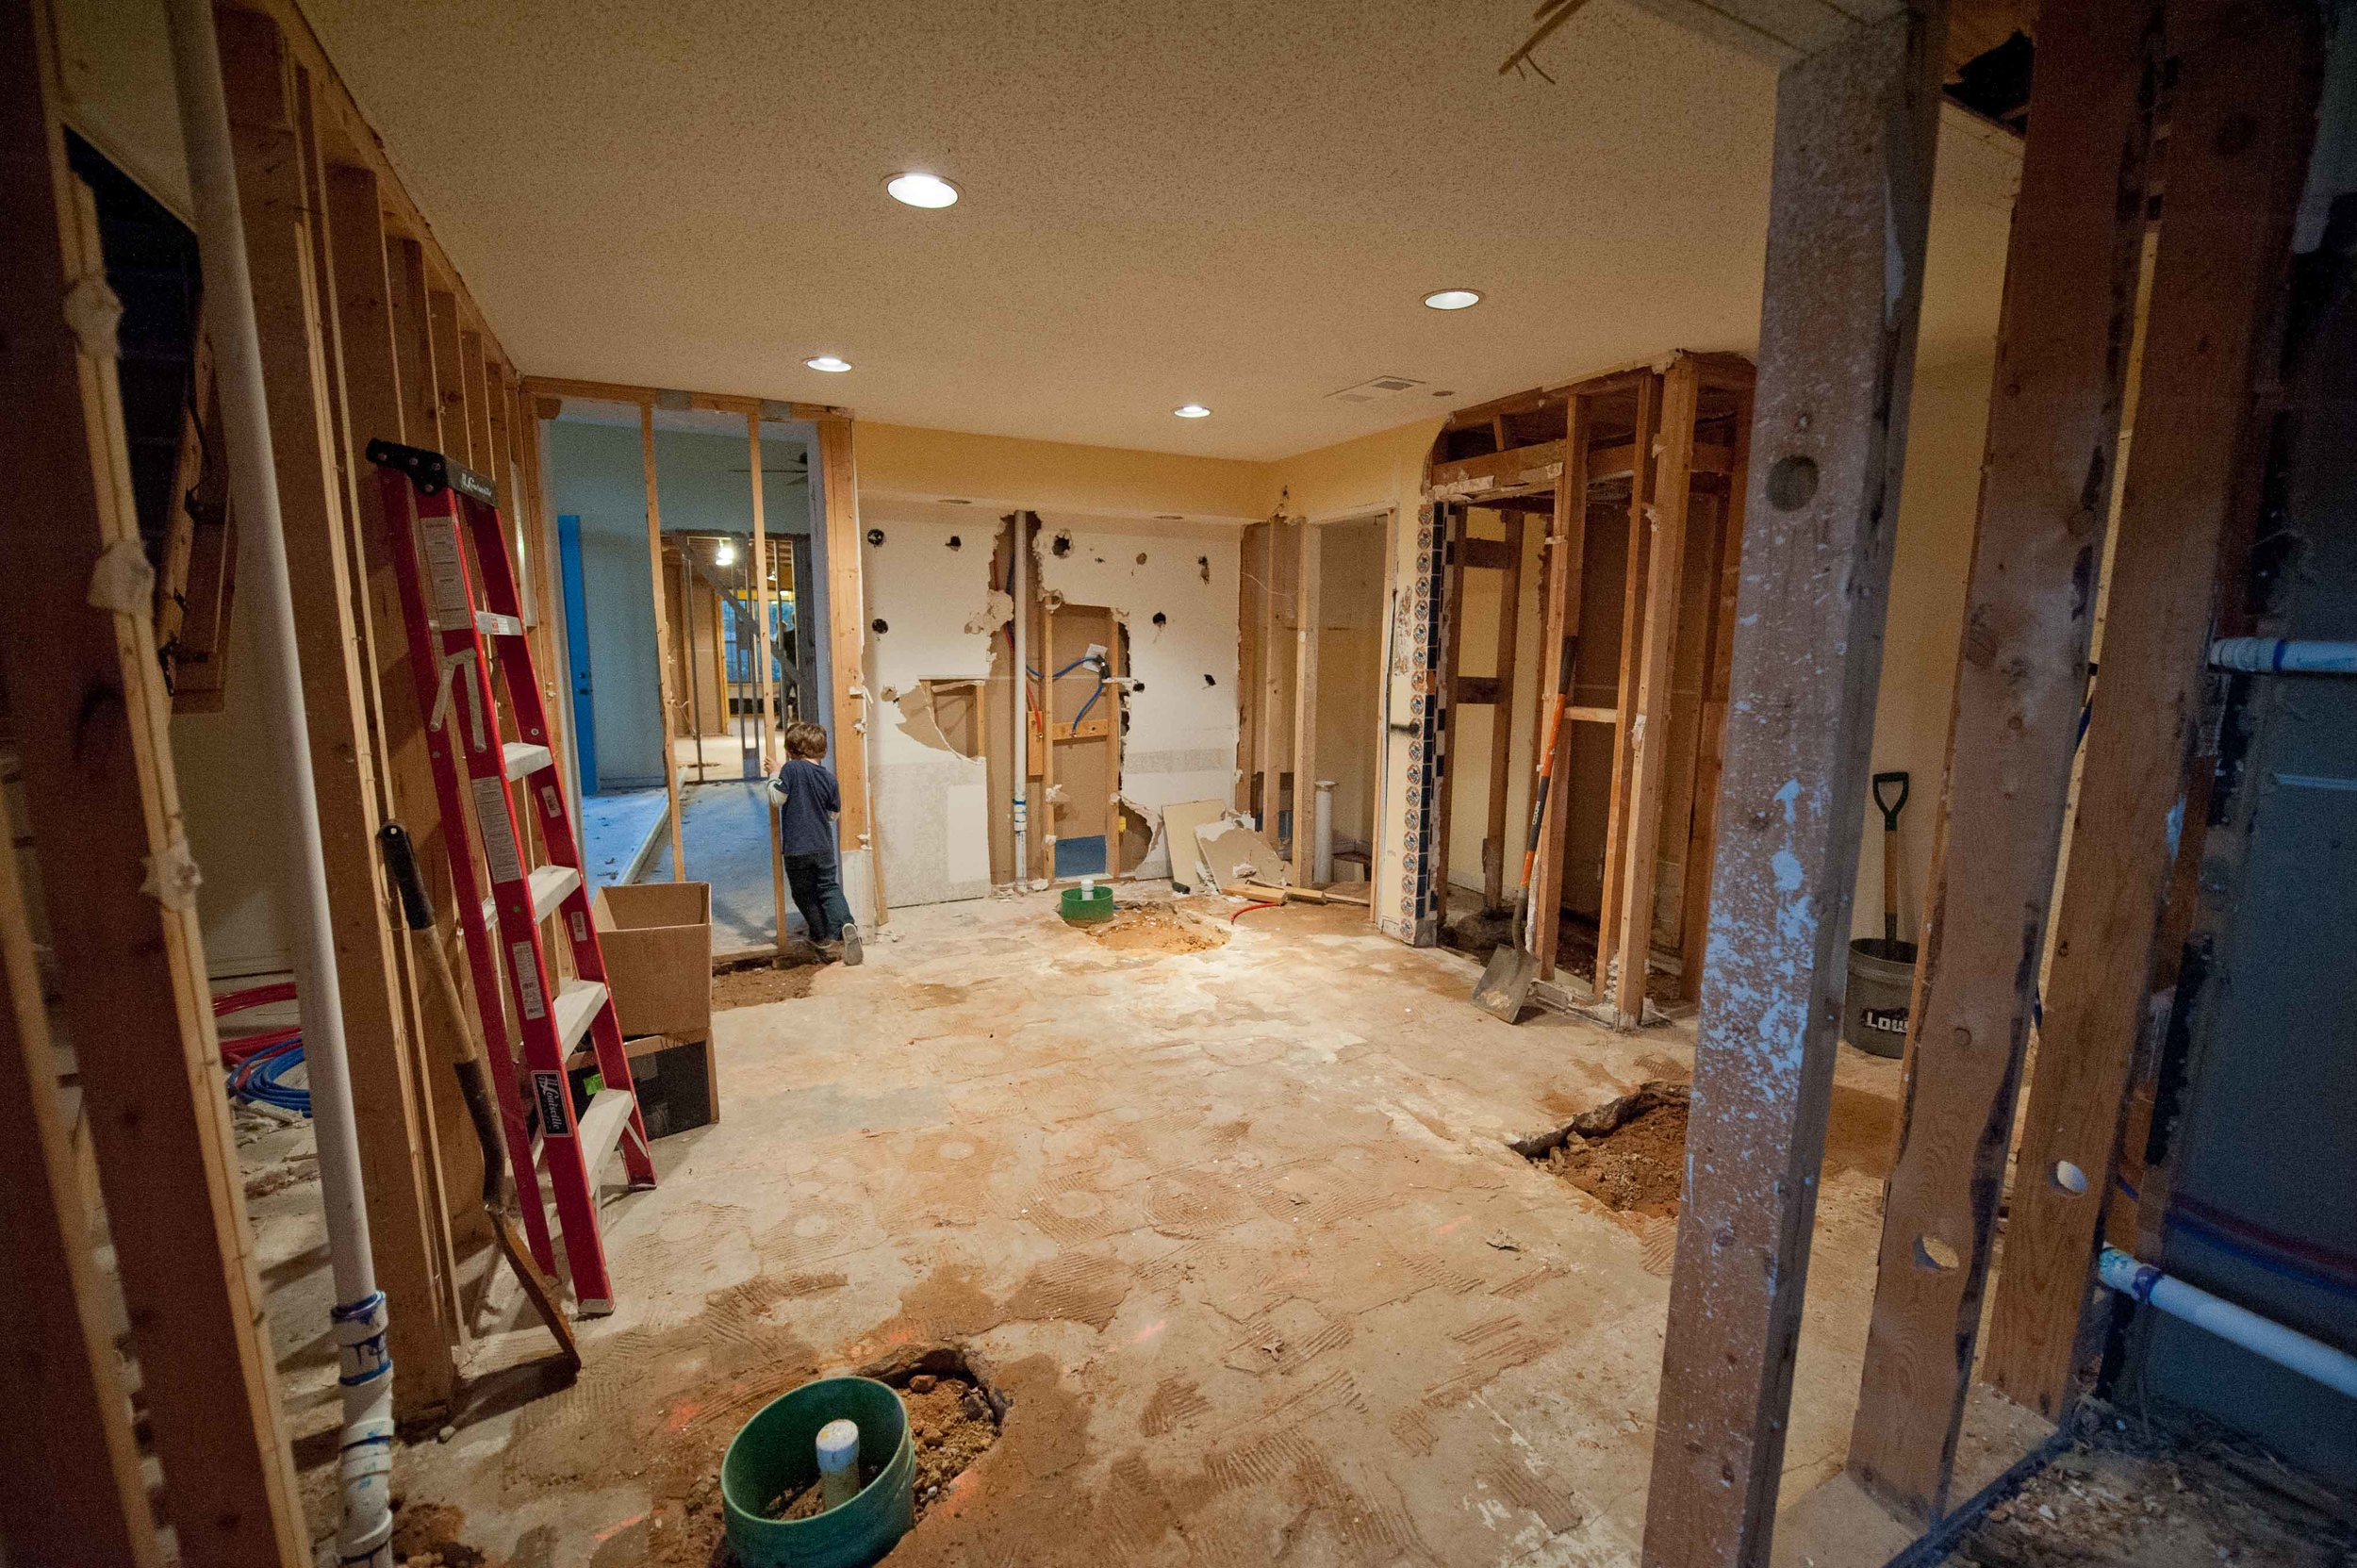 During: And this was after the gaping hole in the middle of the room was filled in. If you look closely, you can see through the family room, into the kitchen through the framing on the left.